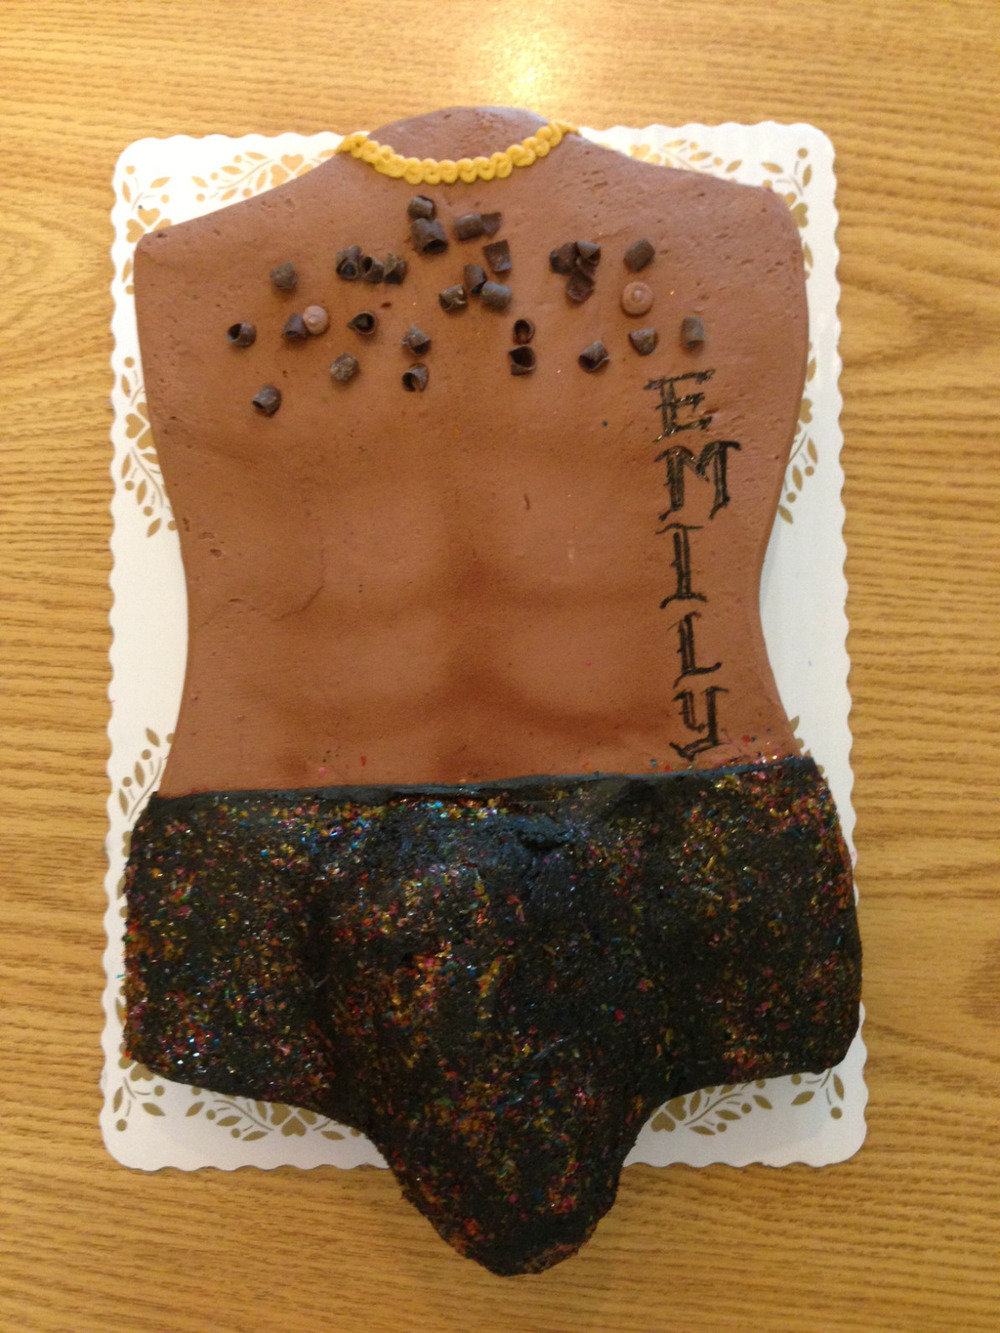 Male Torso Cake in Chocolate